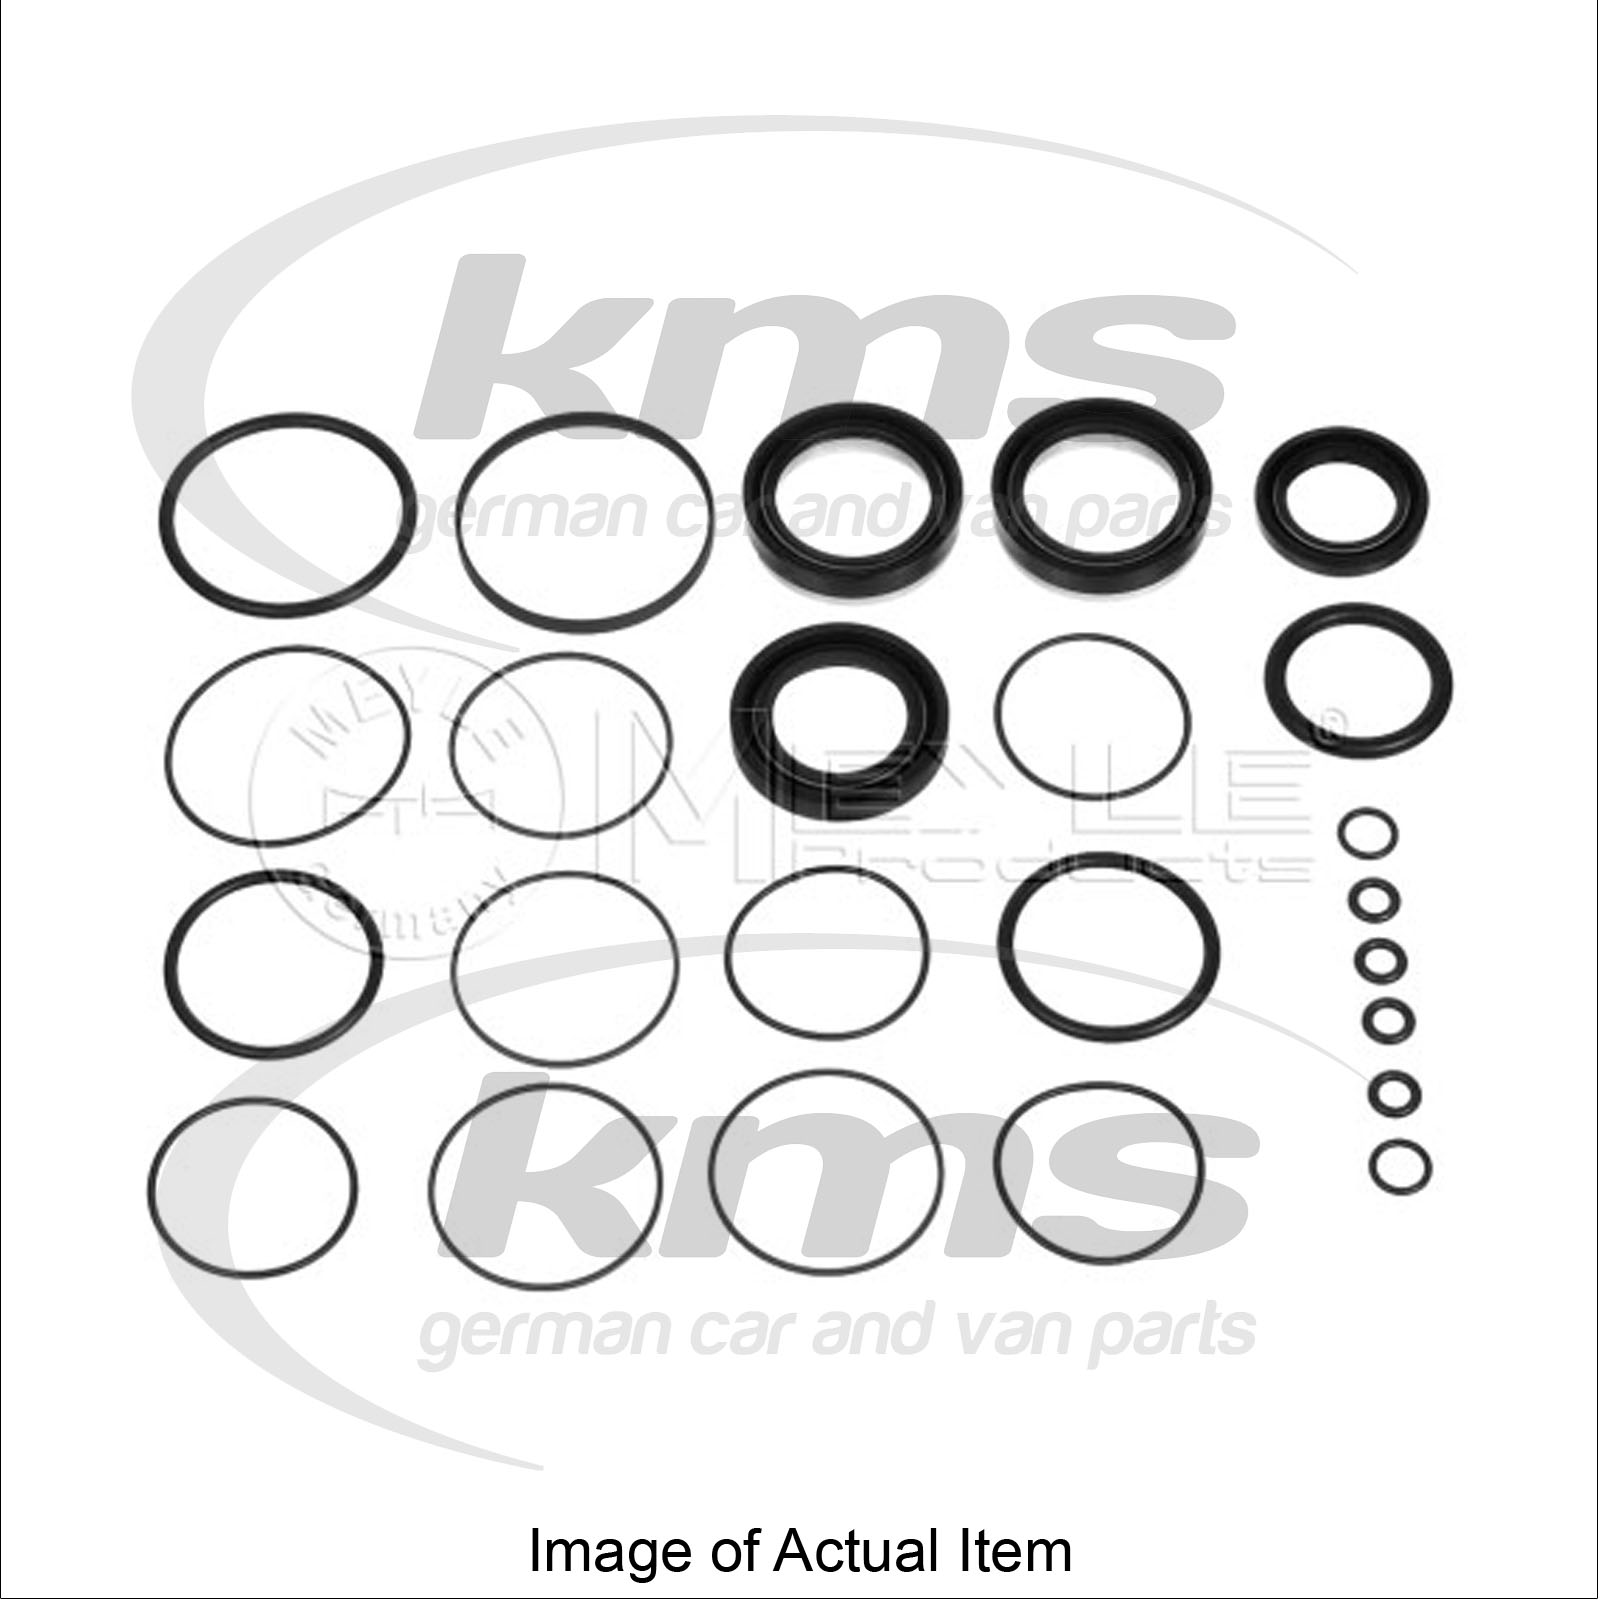 Gasket Set For Steering Gear Bmw 3 E36 M3 3 0 286bhp Top